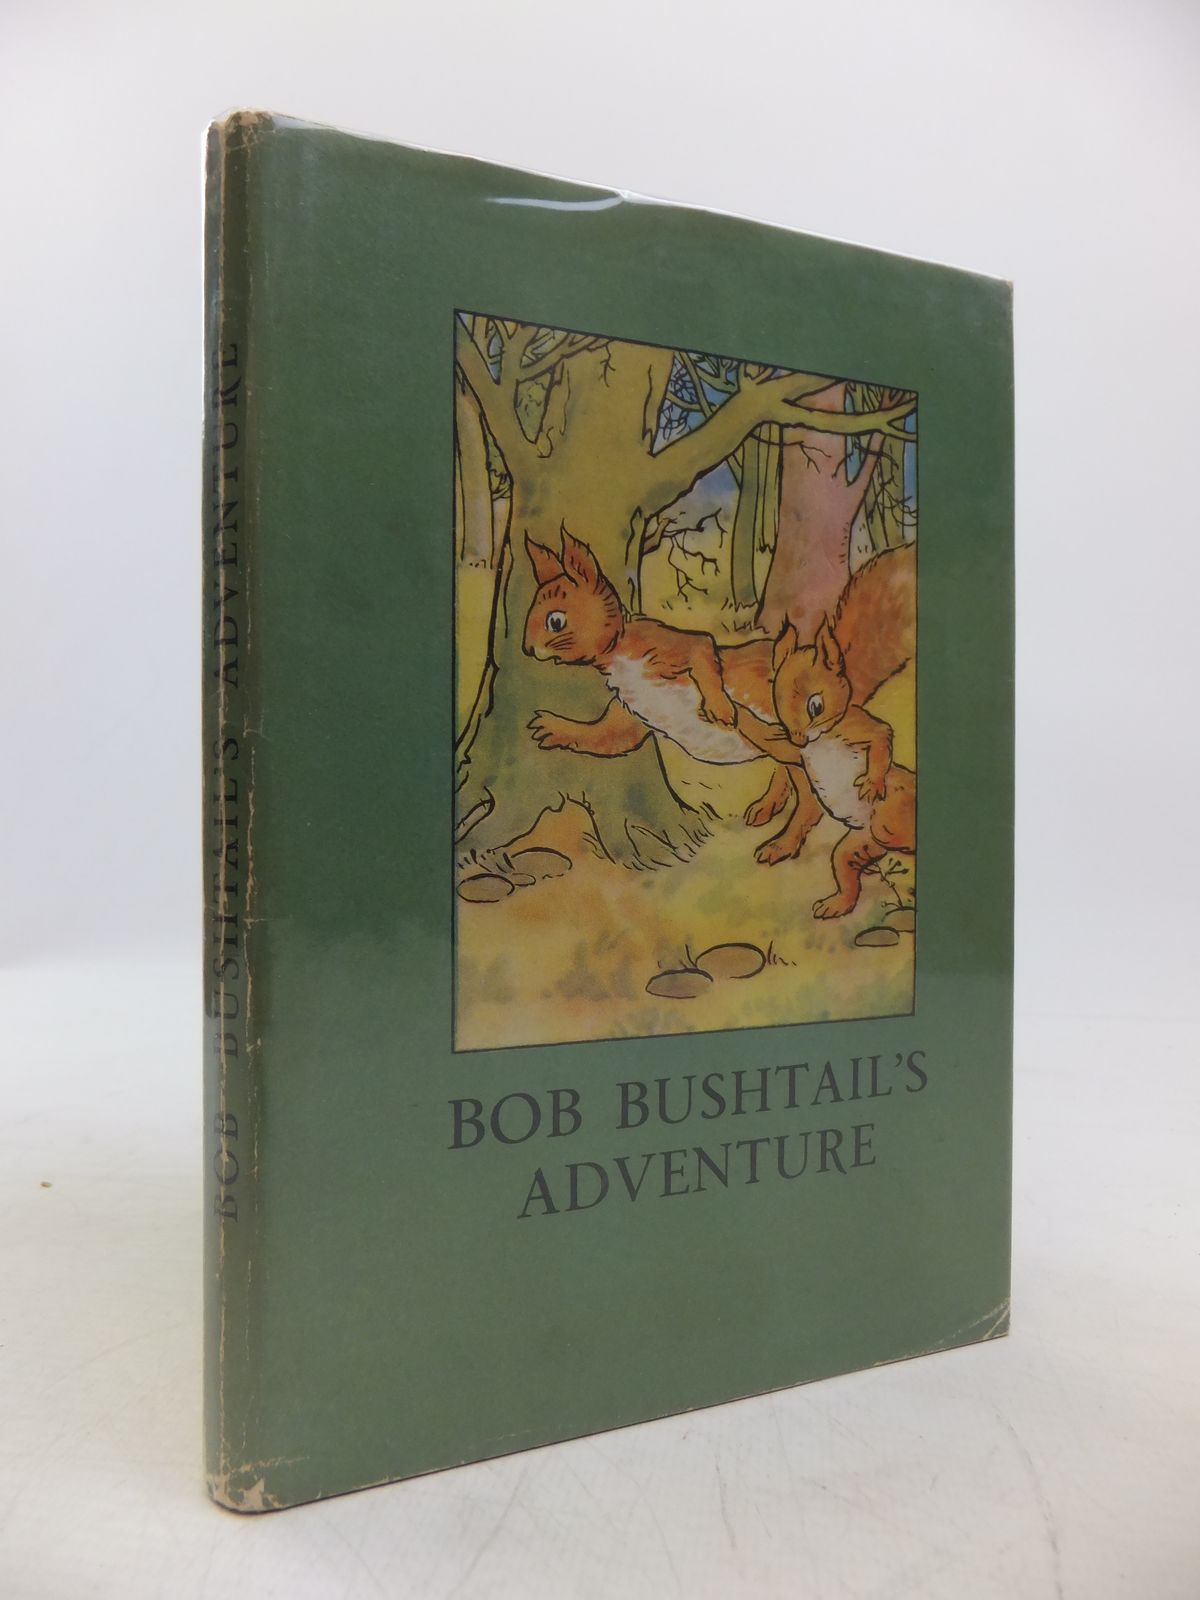 Photo of BOB BUSHTAIL'S ADVENTURE written by Macgregor, A.J. Perring, W. illustrated by Macgregor, A.J. published by Wills & Hepworth Ltd. (STOCK CODE: 1811380)  for sale by Stella & Rose's Books